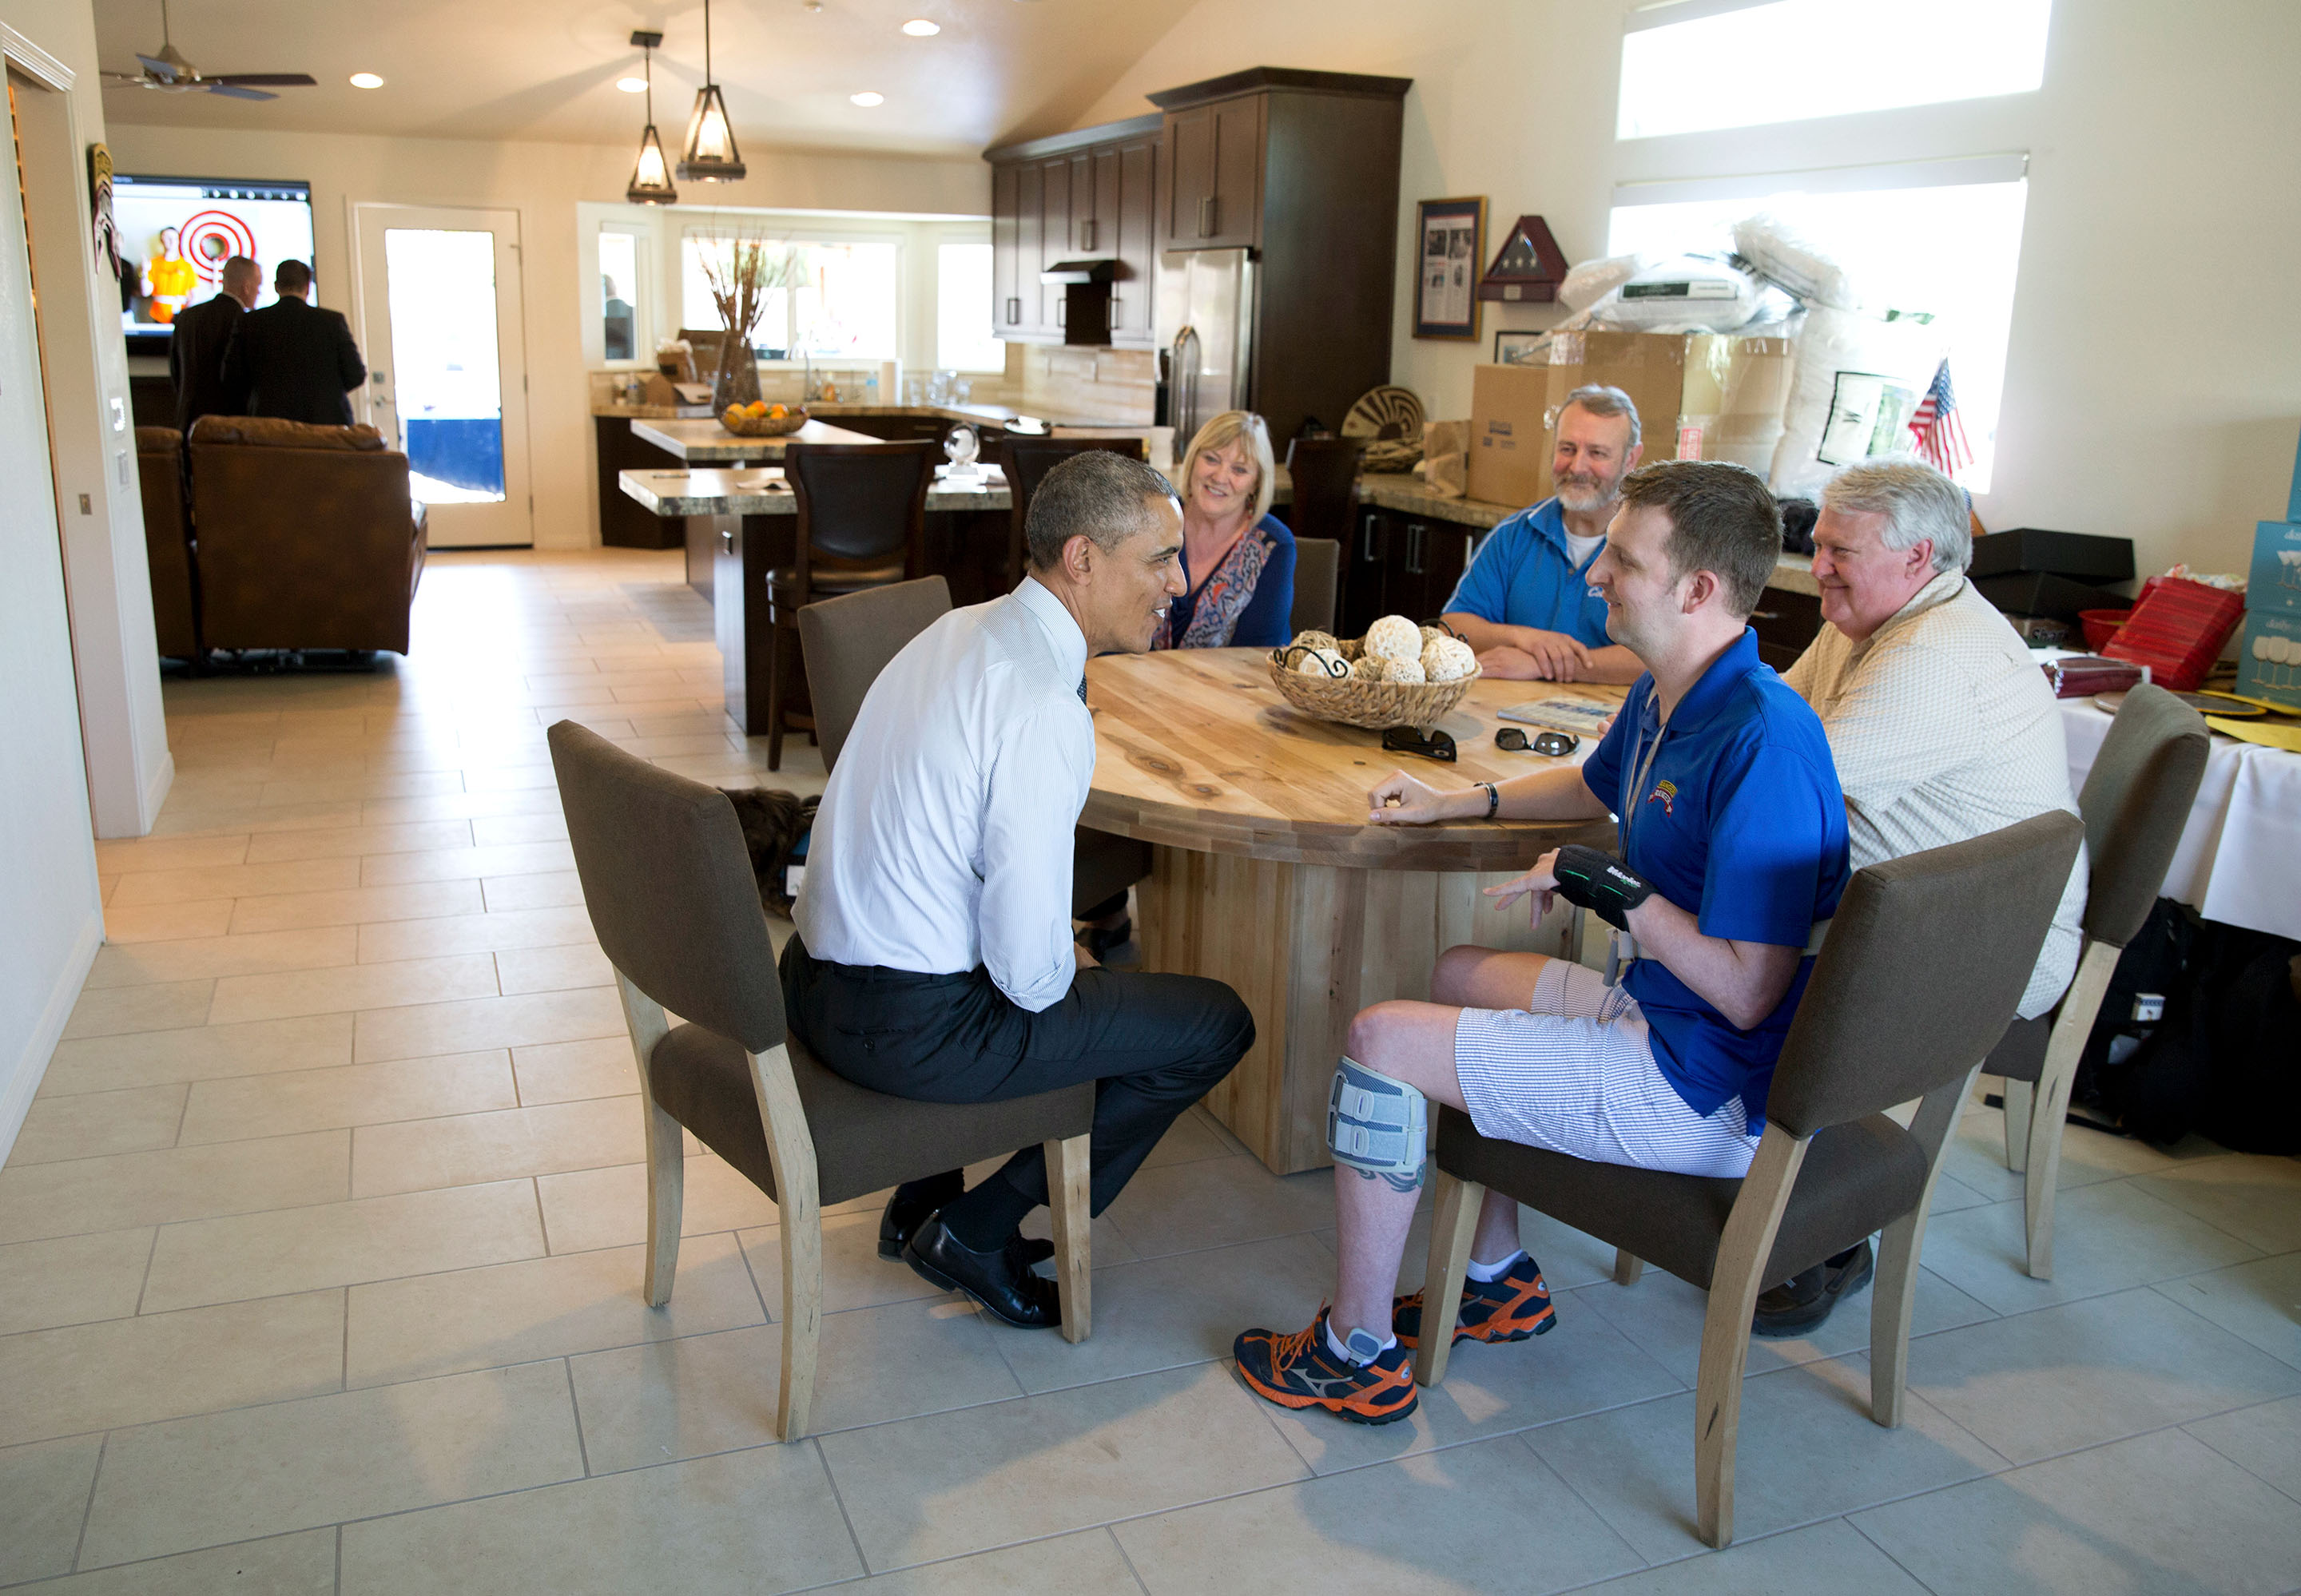 March 13, 2015: President Obama visits with Cory and his family at the kitchen table. (Official White House Photo by Pete Souza)